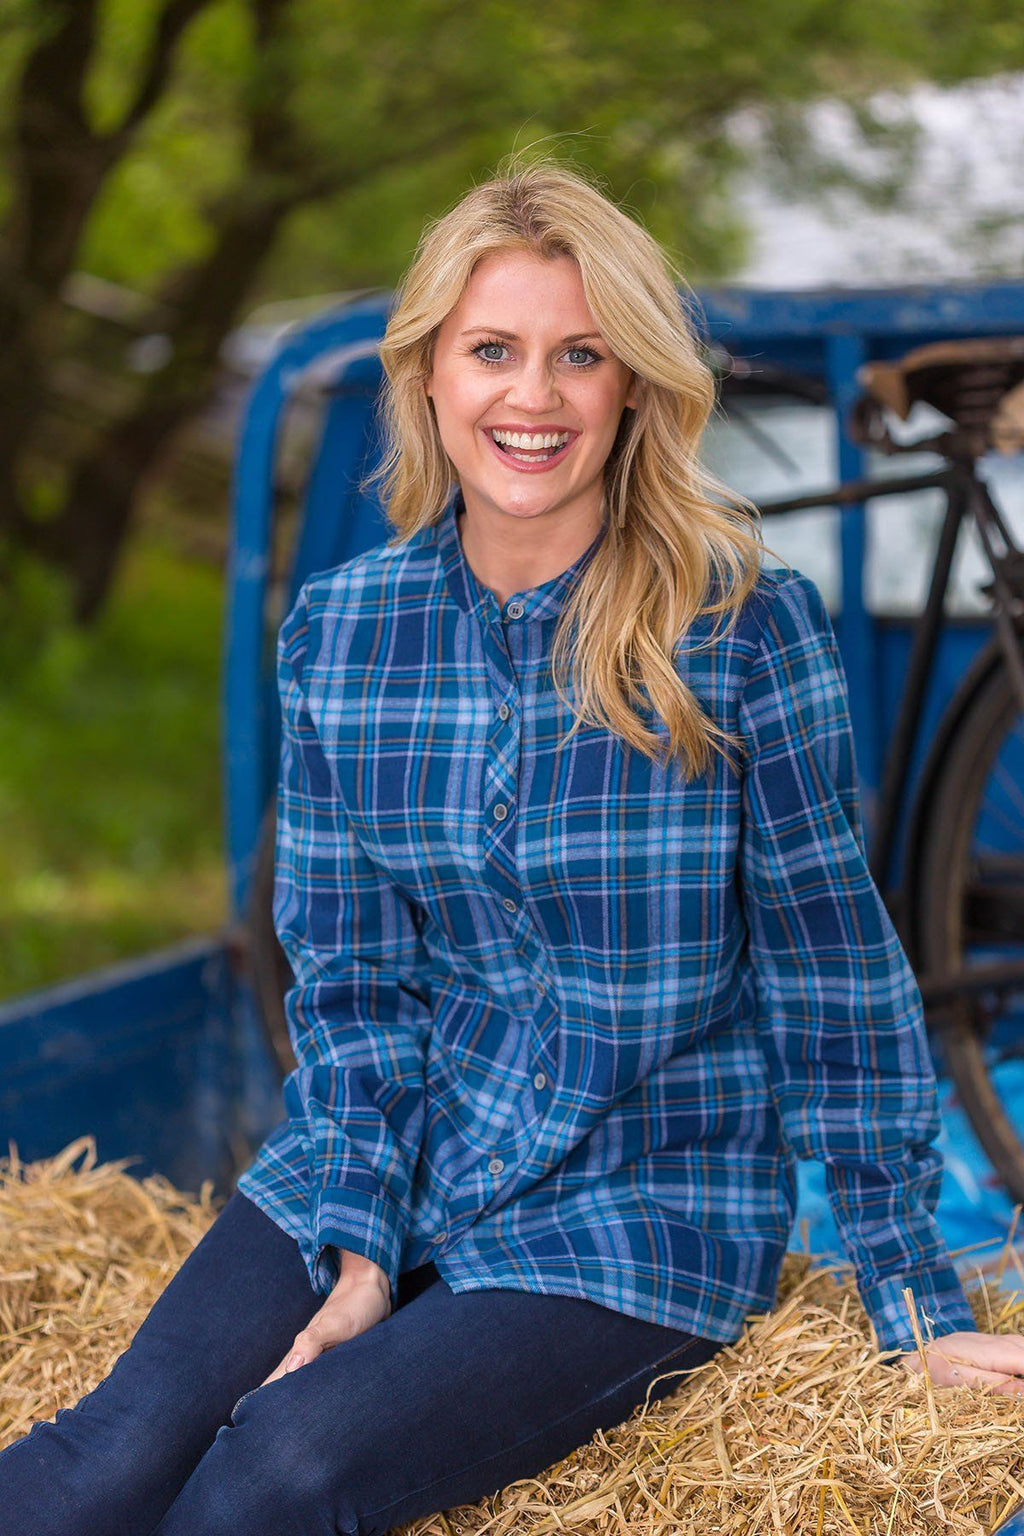 Grandfather Shirt Ladies Flannel Blue Check- (LV8) Grandad Shirts Lee Valley Ireland